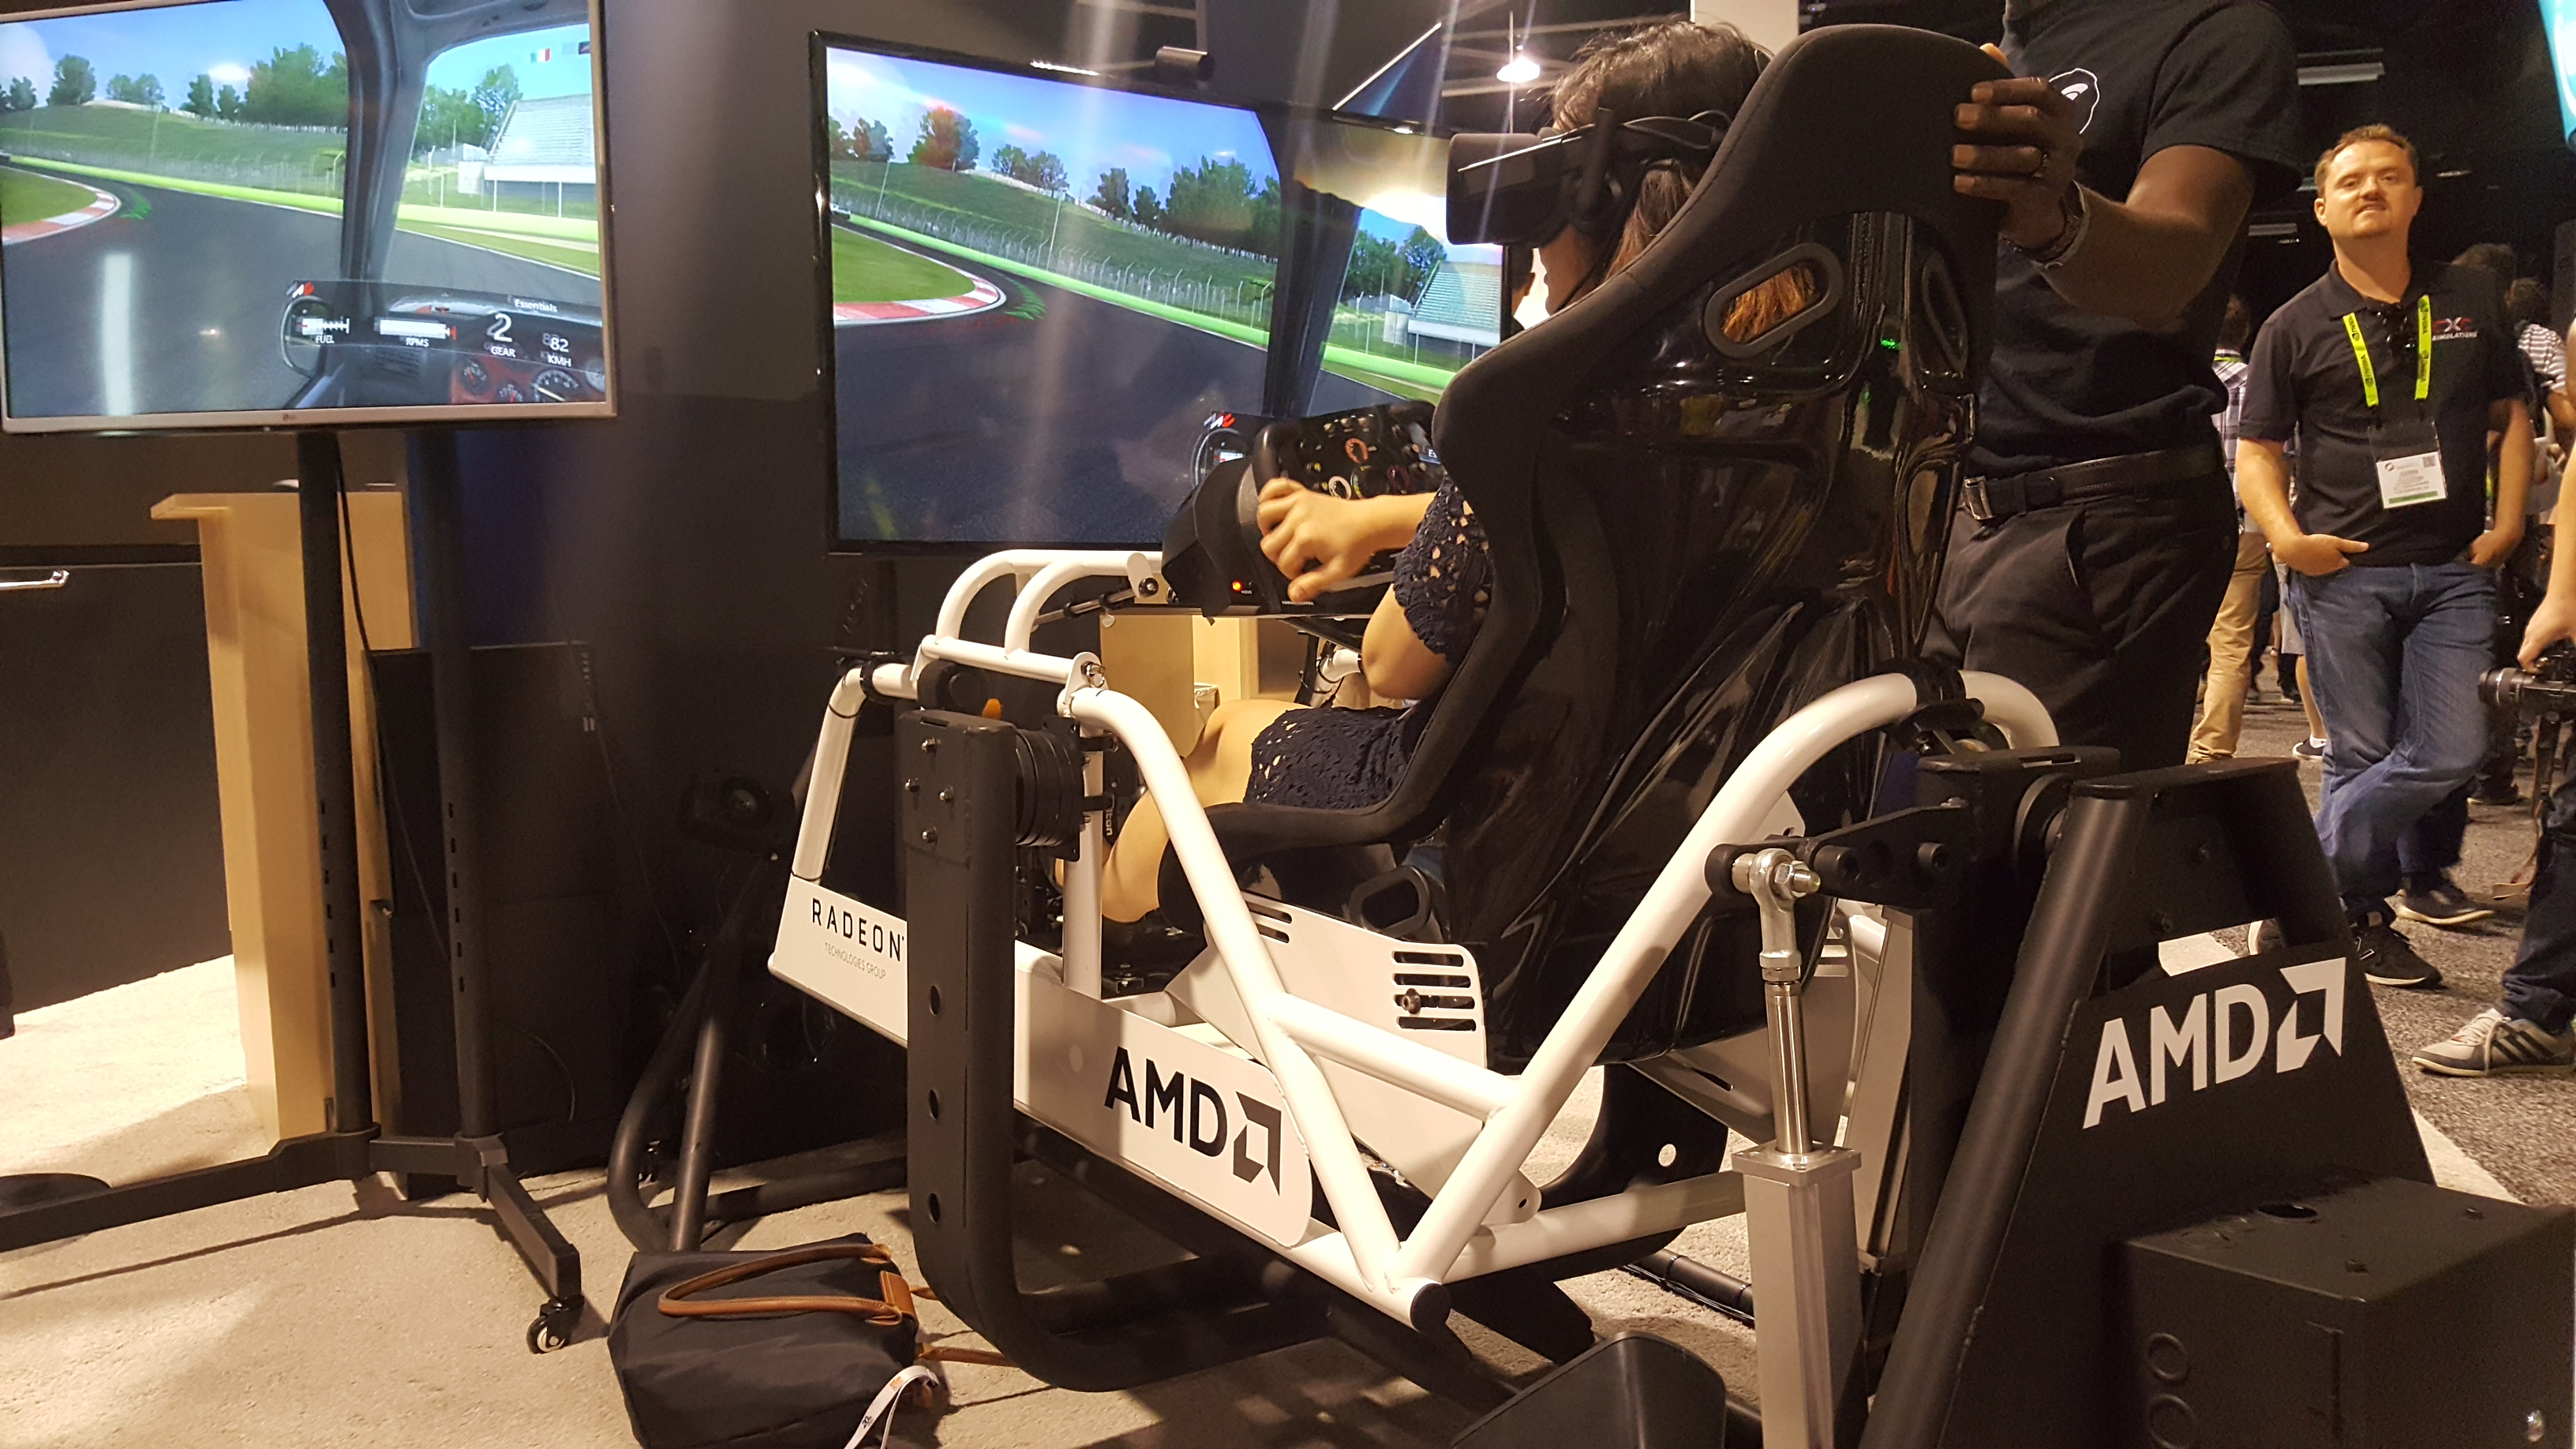 AMD Powered, VR equipped, SimCraft full motion simulator was available for folks to try out at the Radeon Booth.